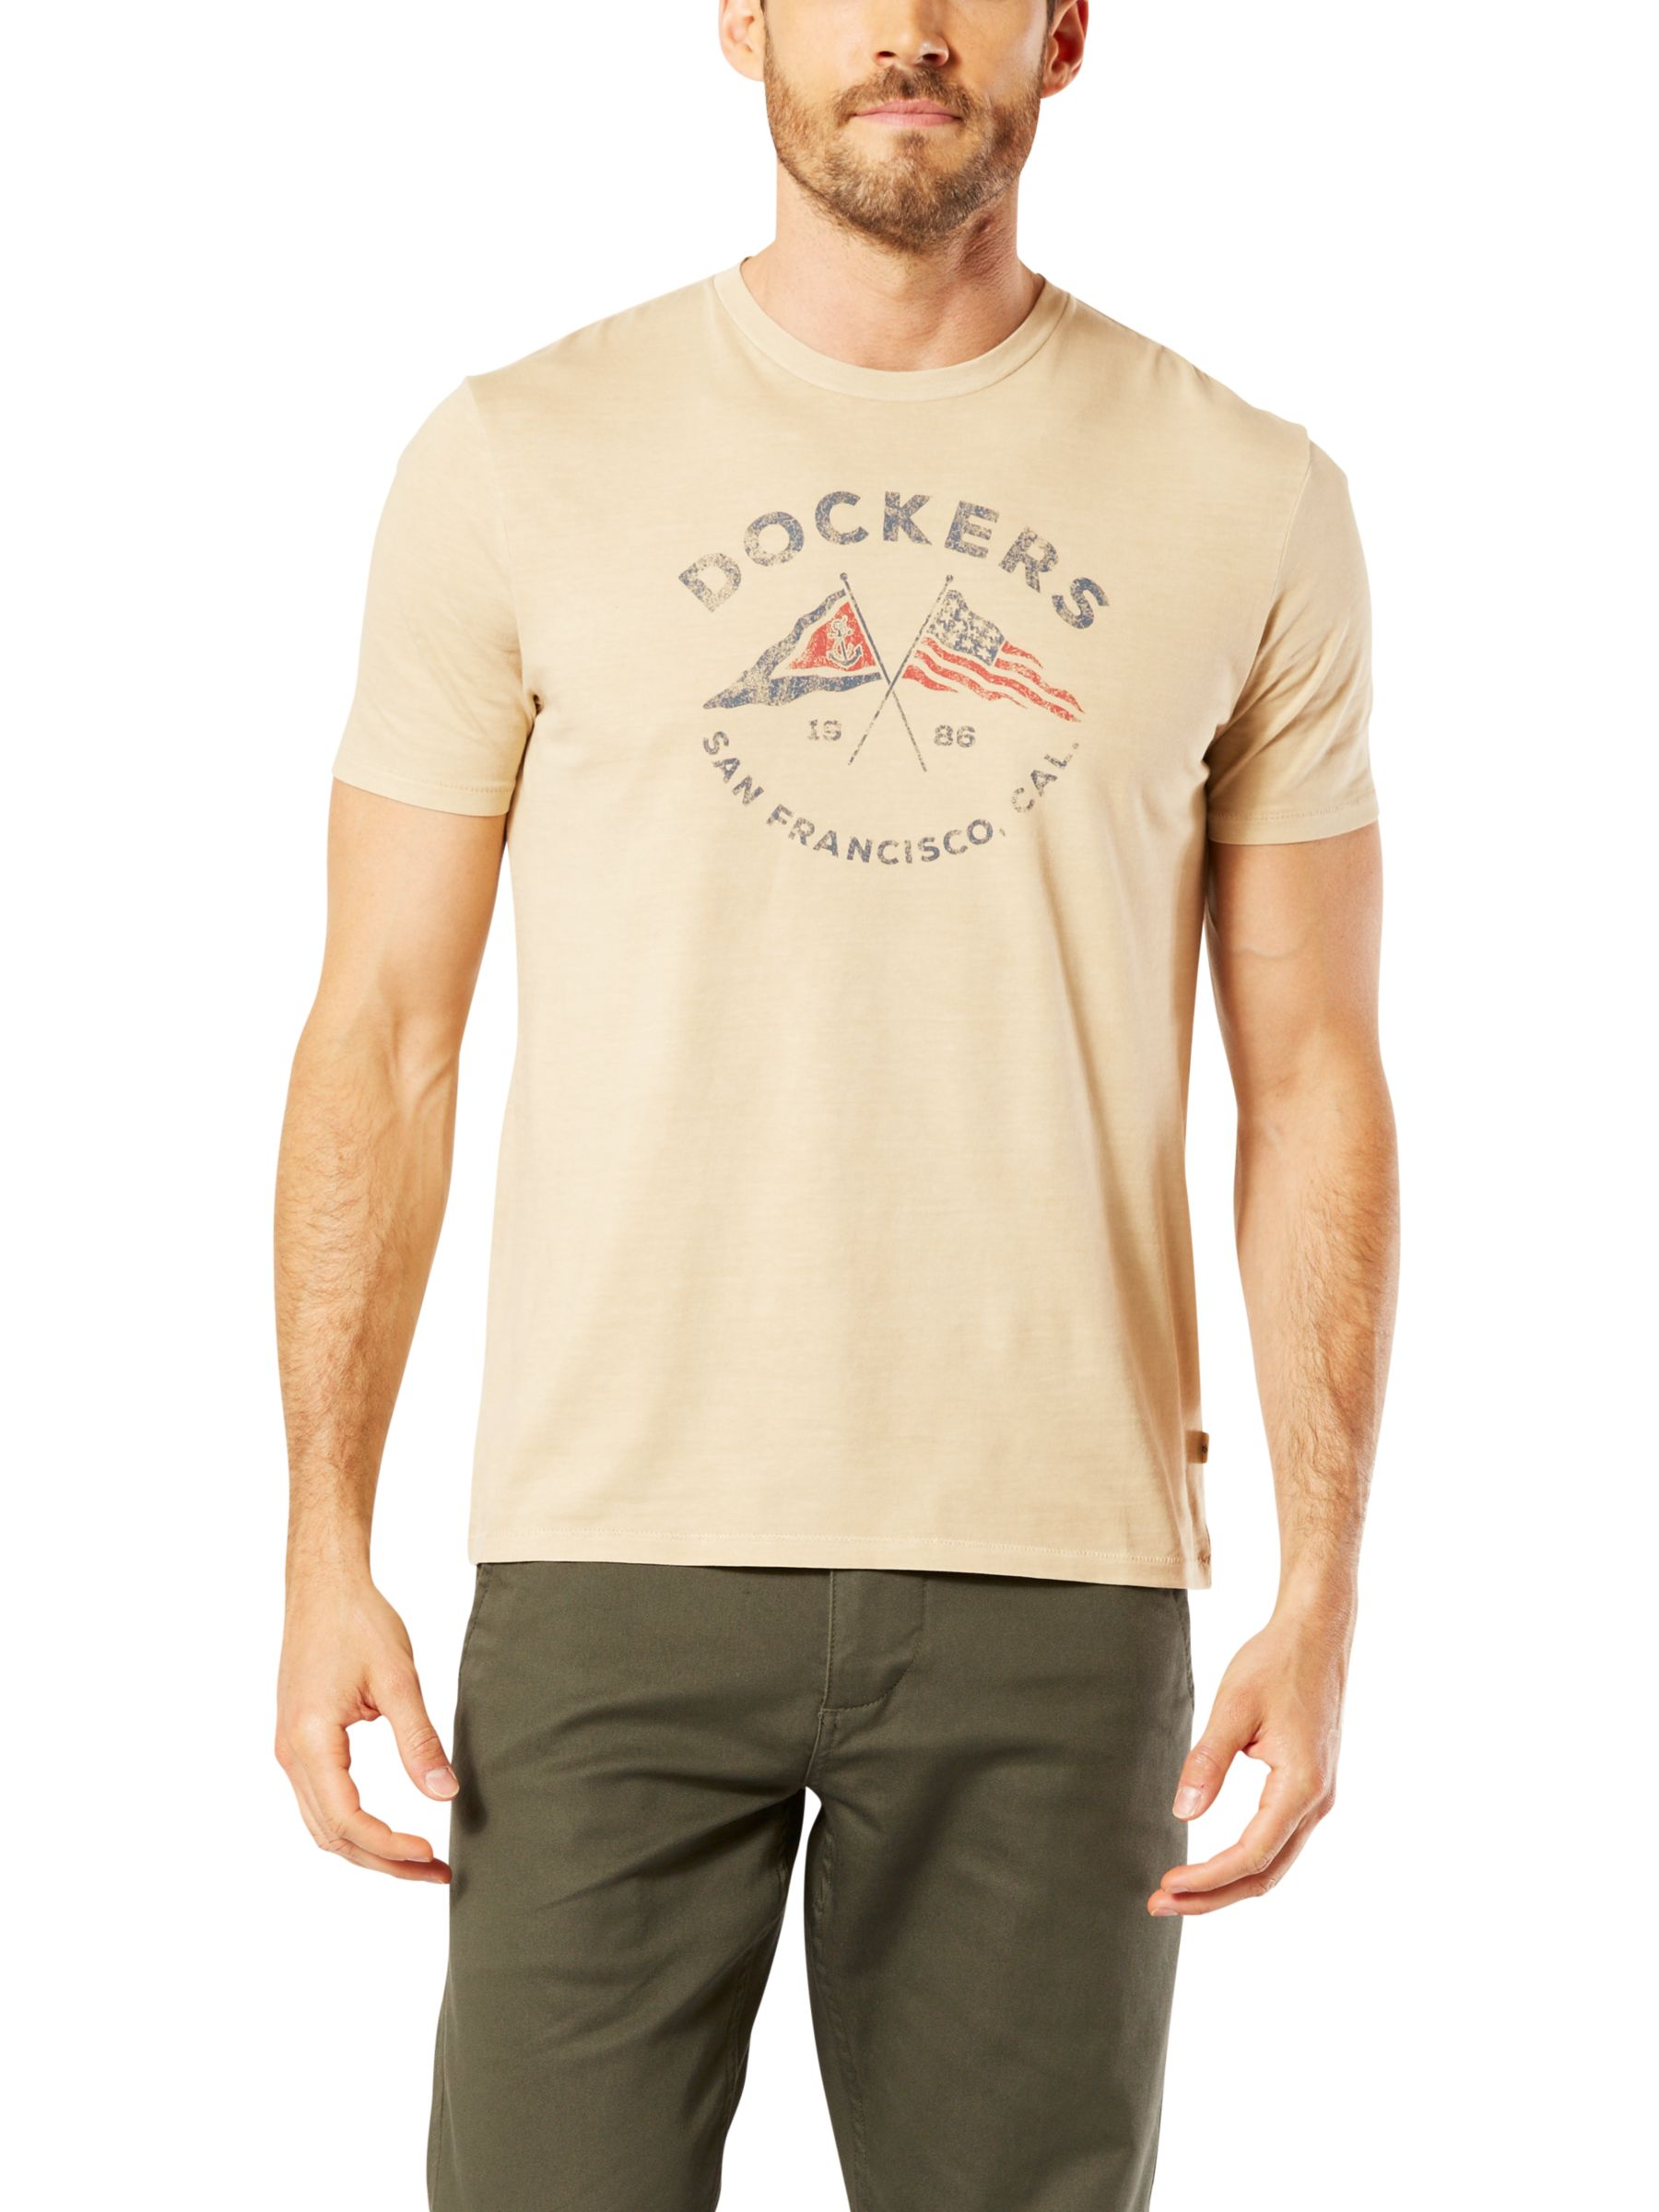 Dockers Dockers Graphic Flags Crew Neck T-Shirt, Crossed Flags Safari